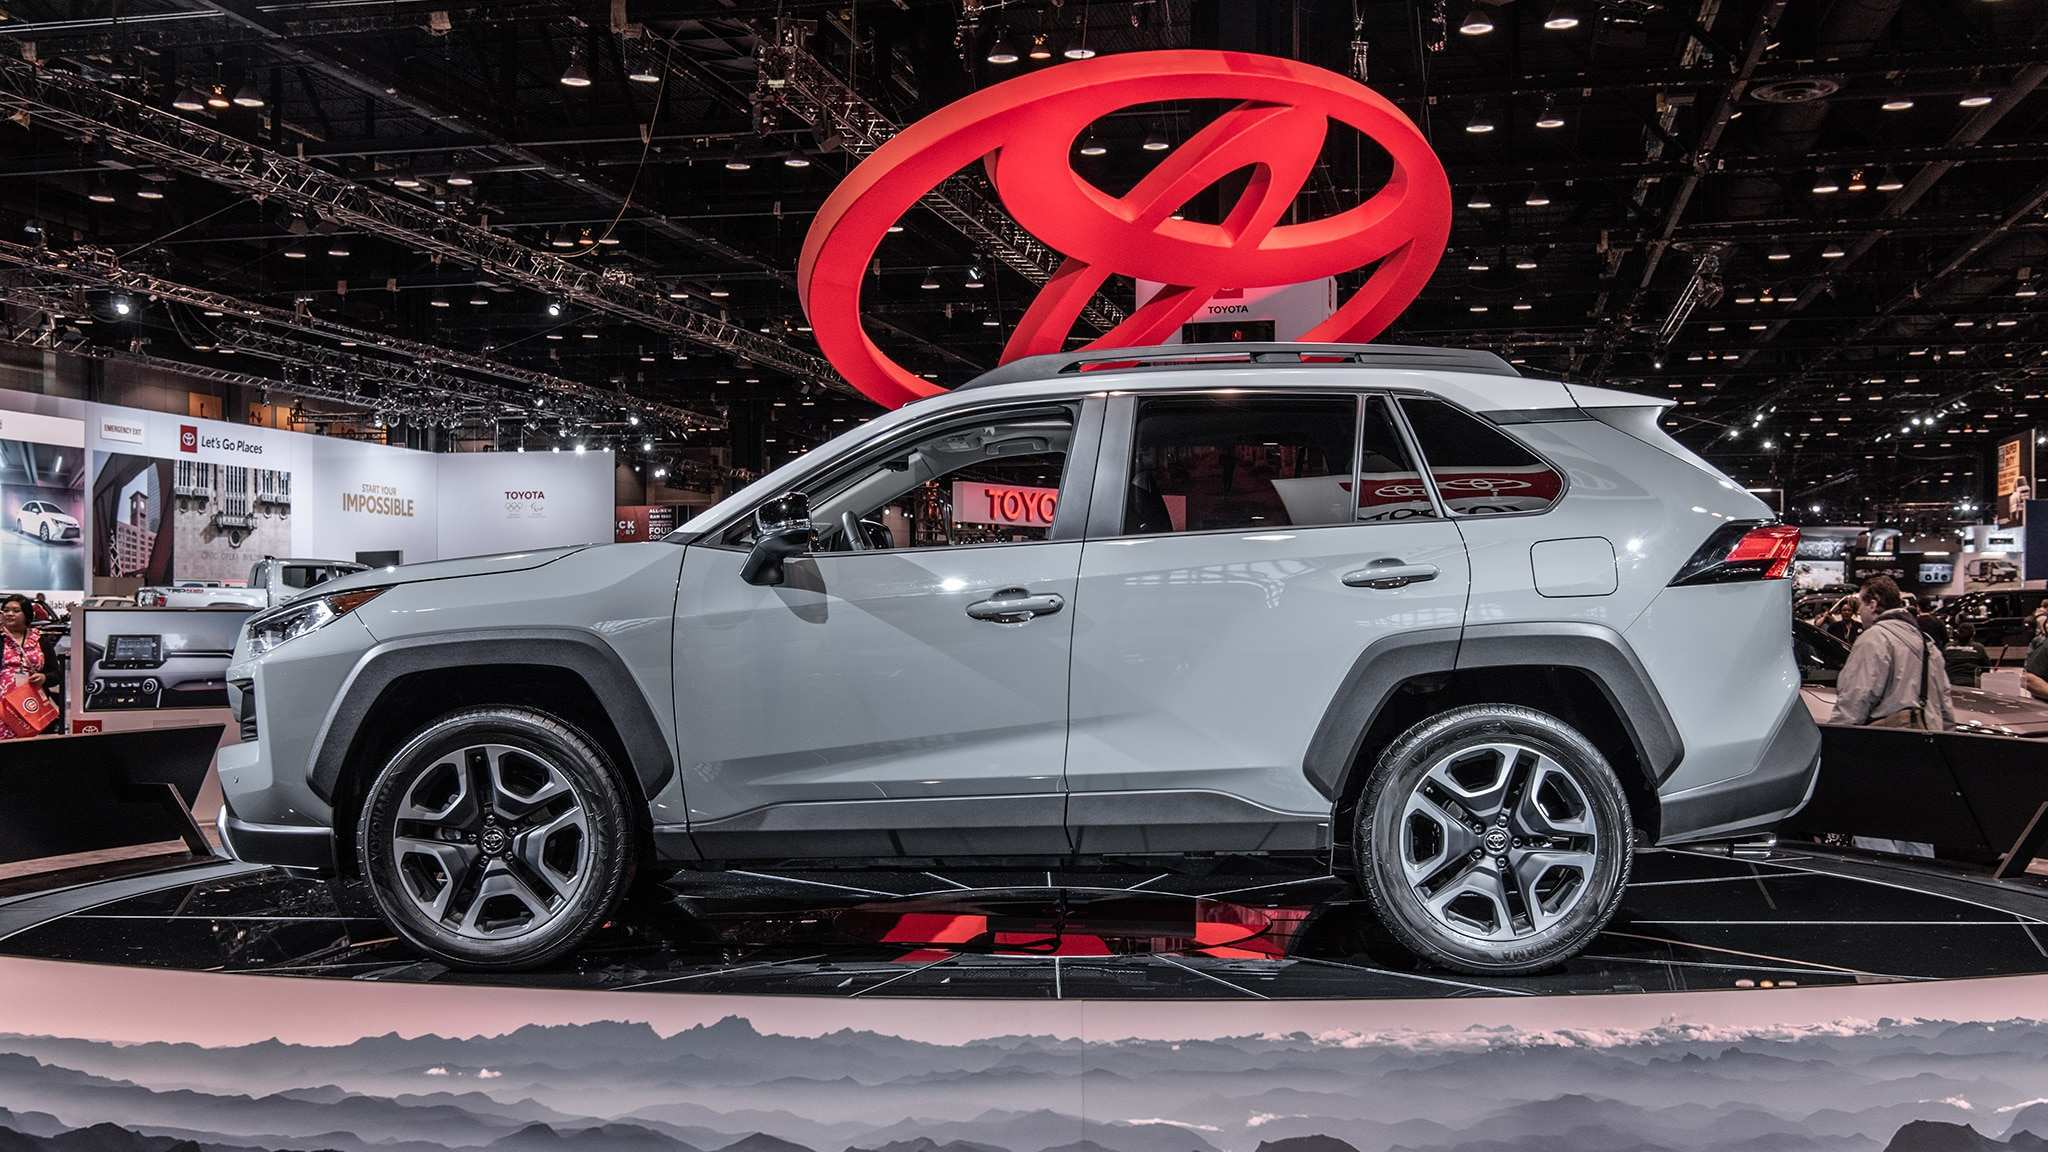 34 Best Review Toyota Rav4 2020 Trd Price and Review with Toyota Rav4 2020 Trd